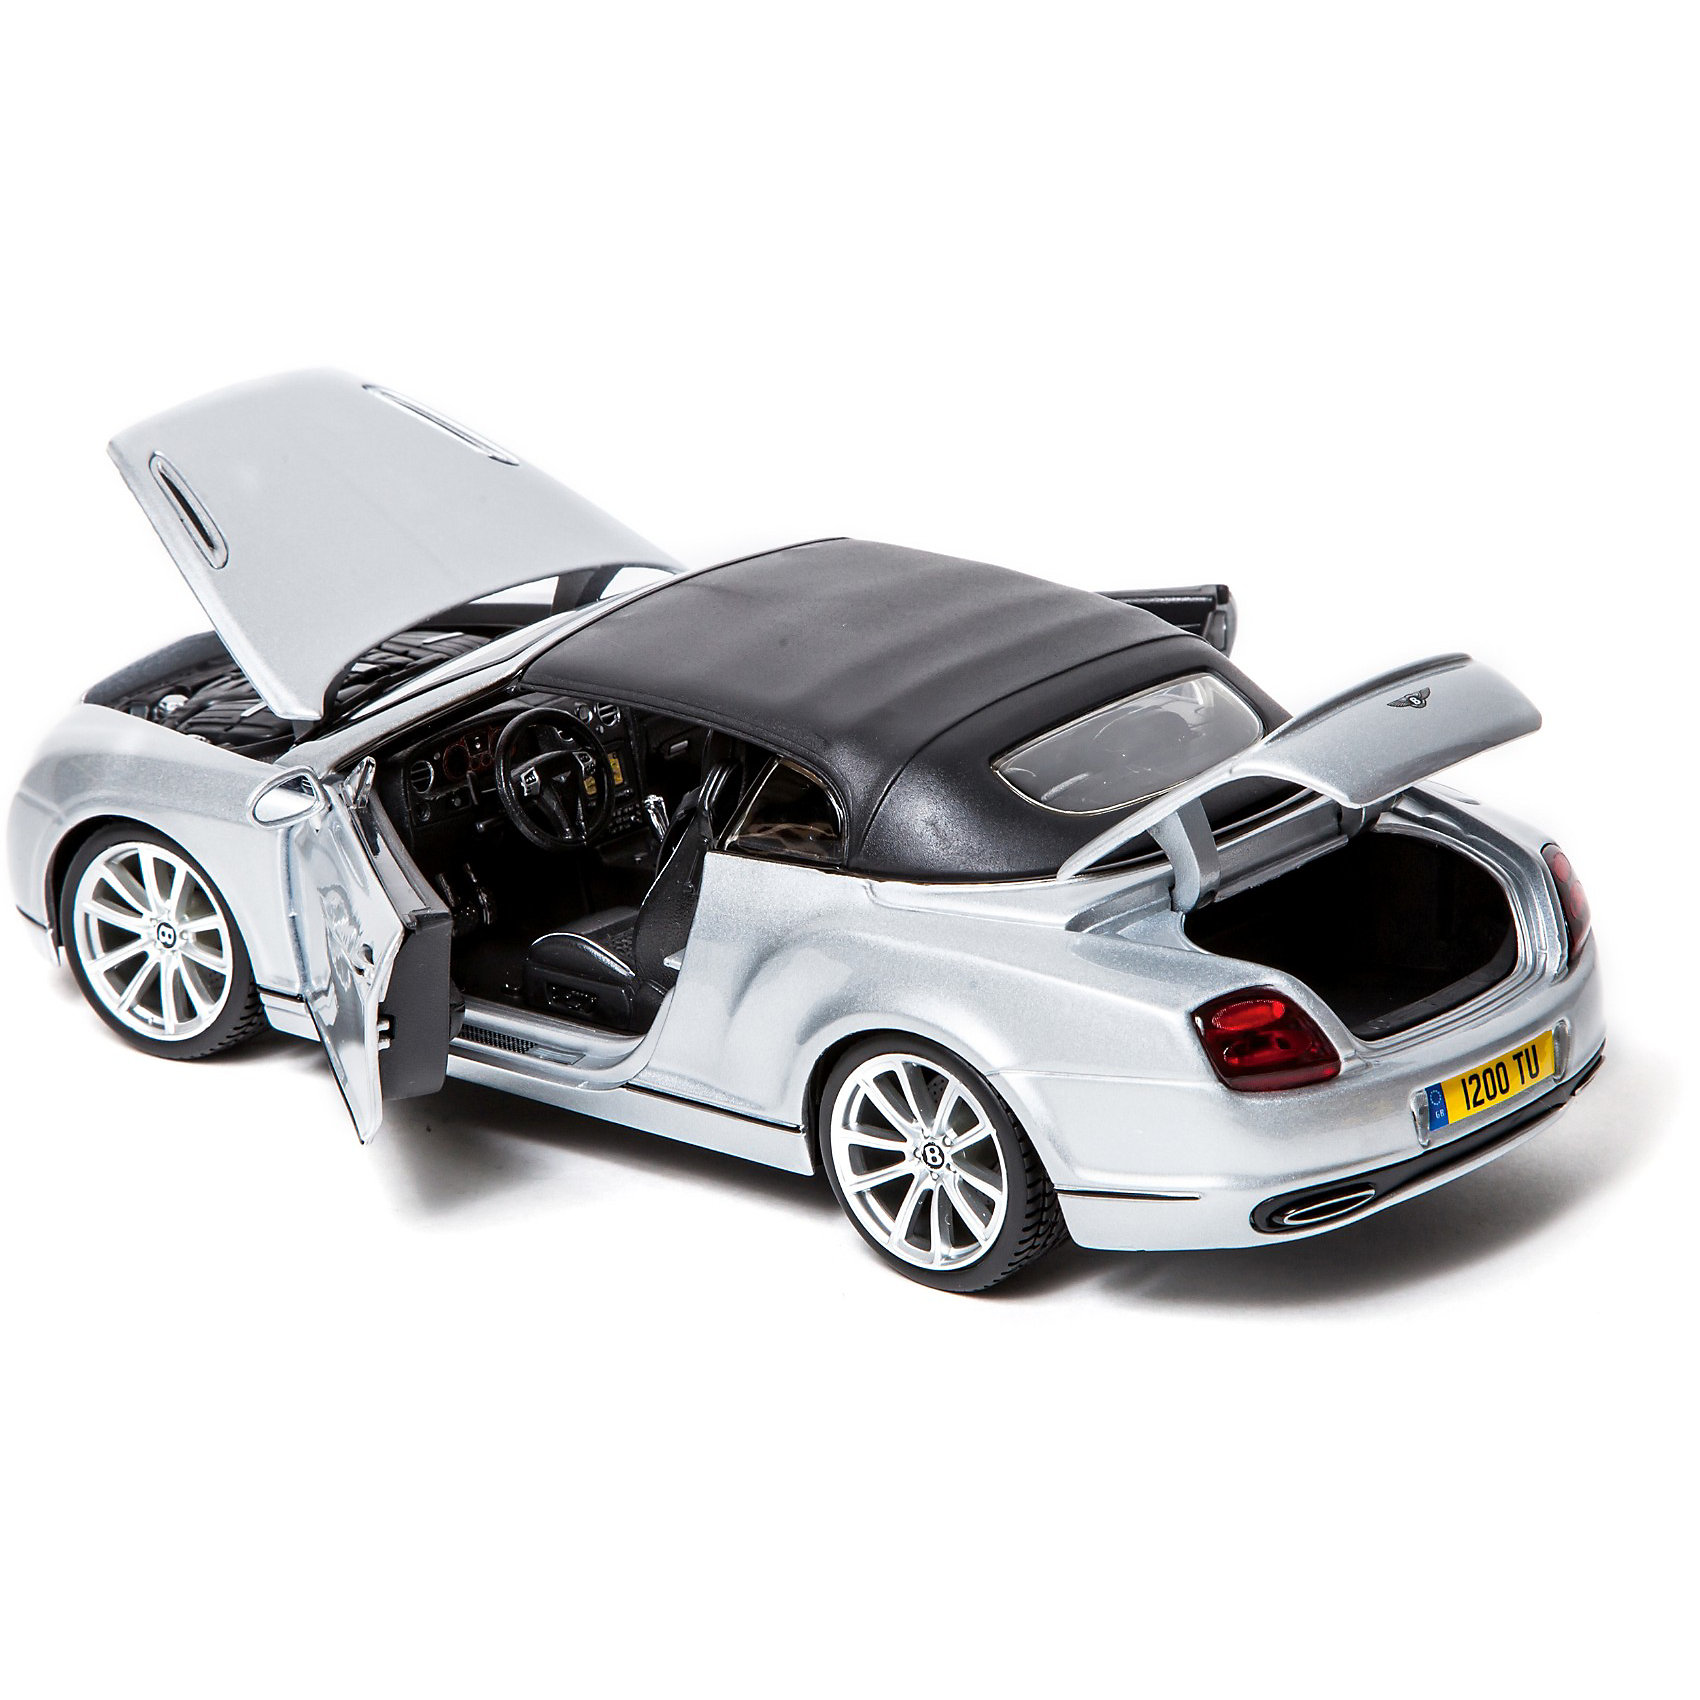 купить Bburago Машина BENTLEY Continental Supersports металл., 1:18 Bburago недорого